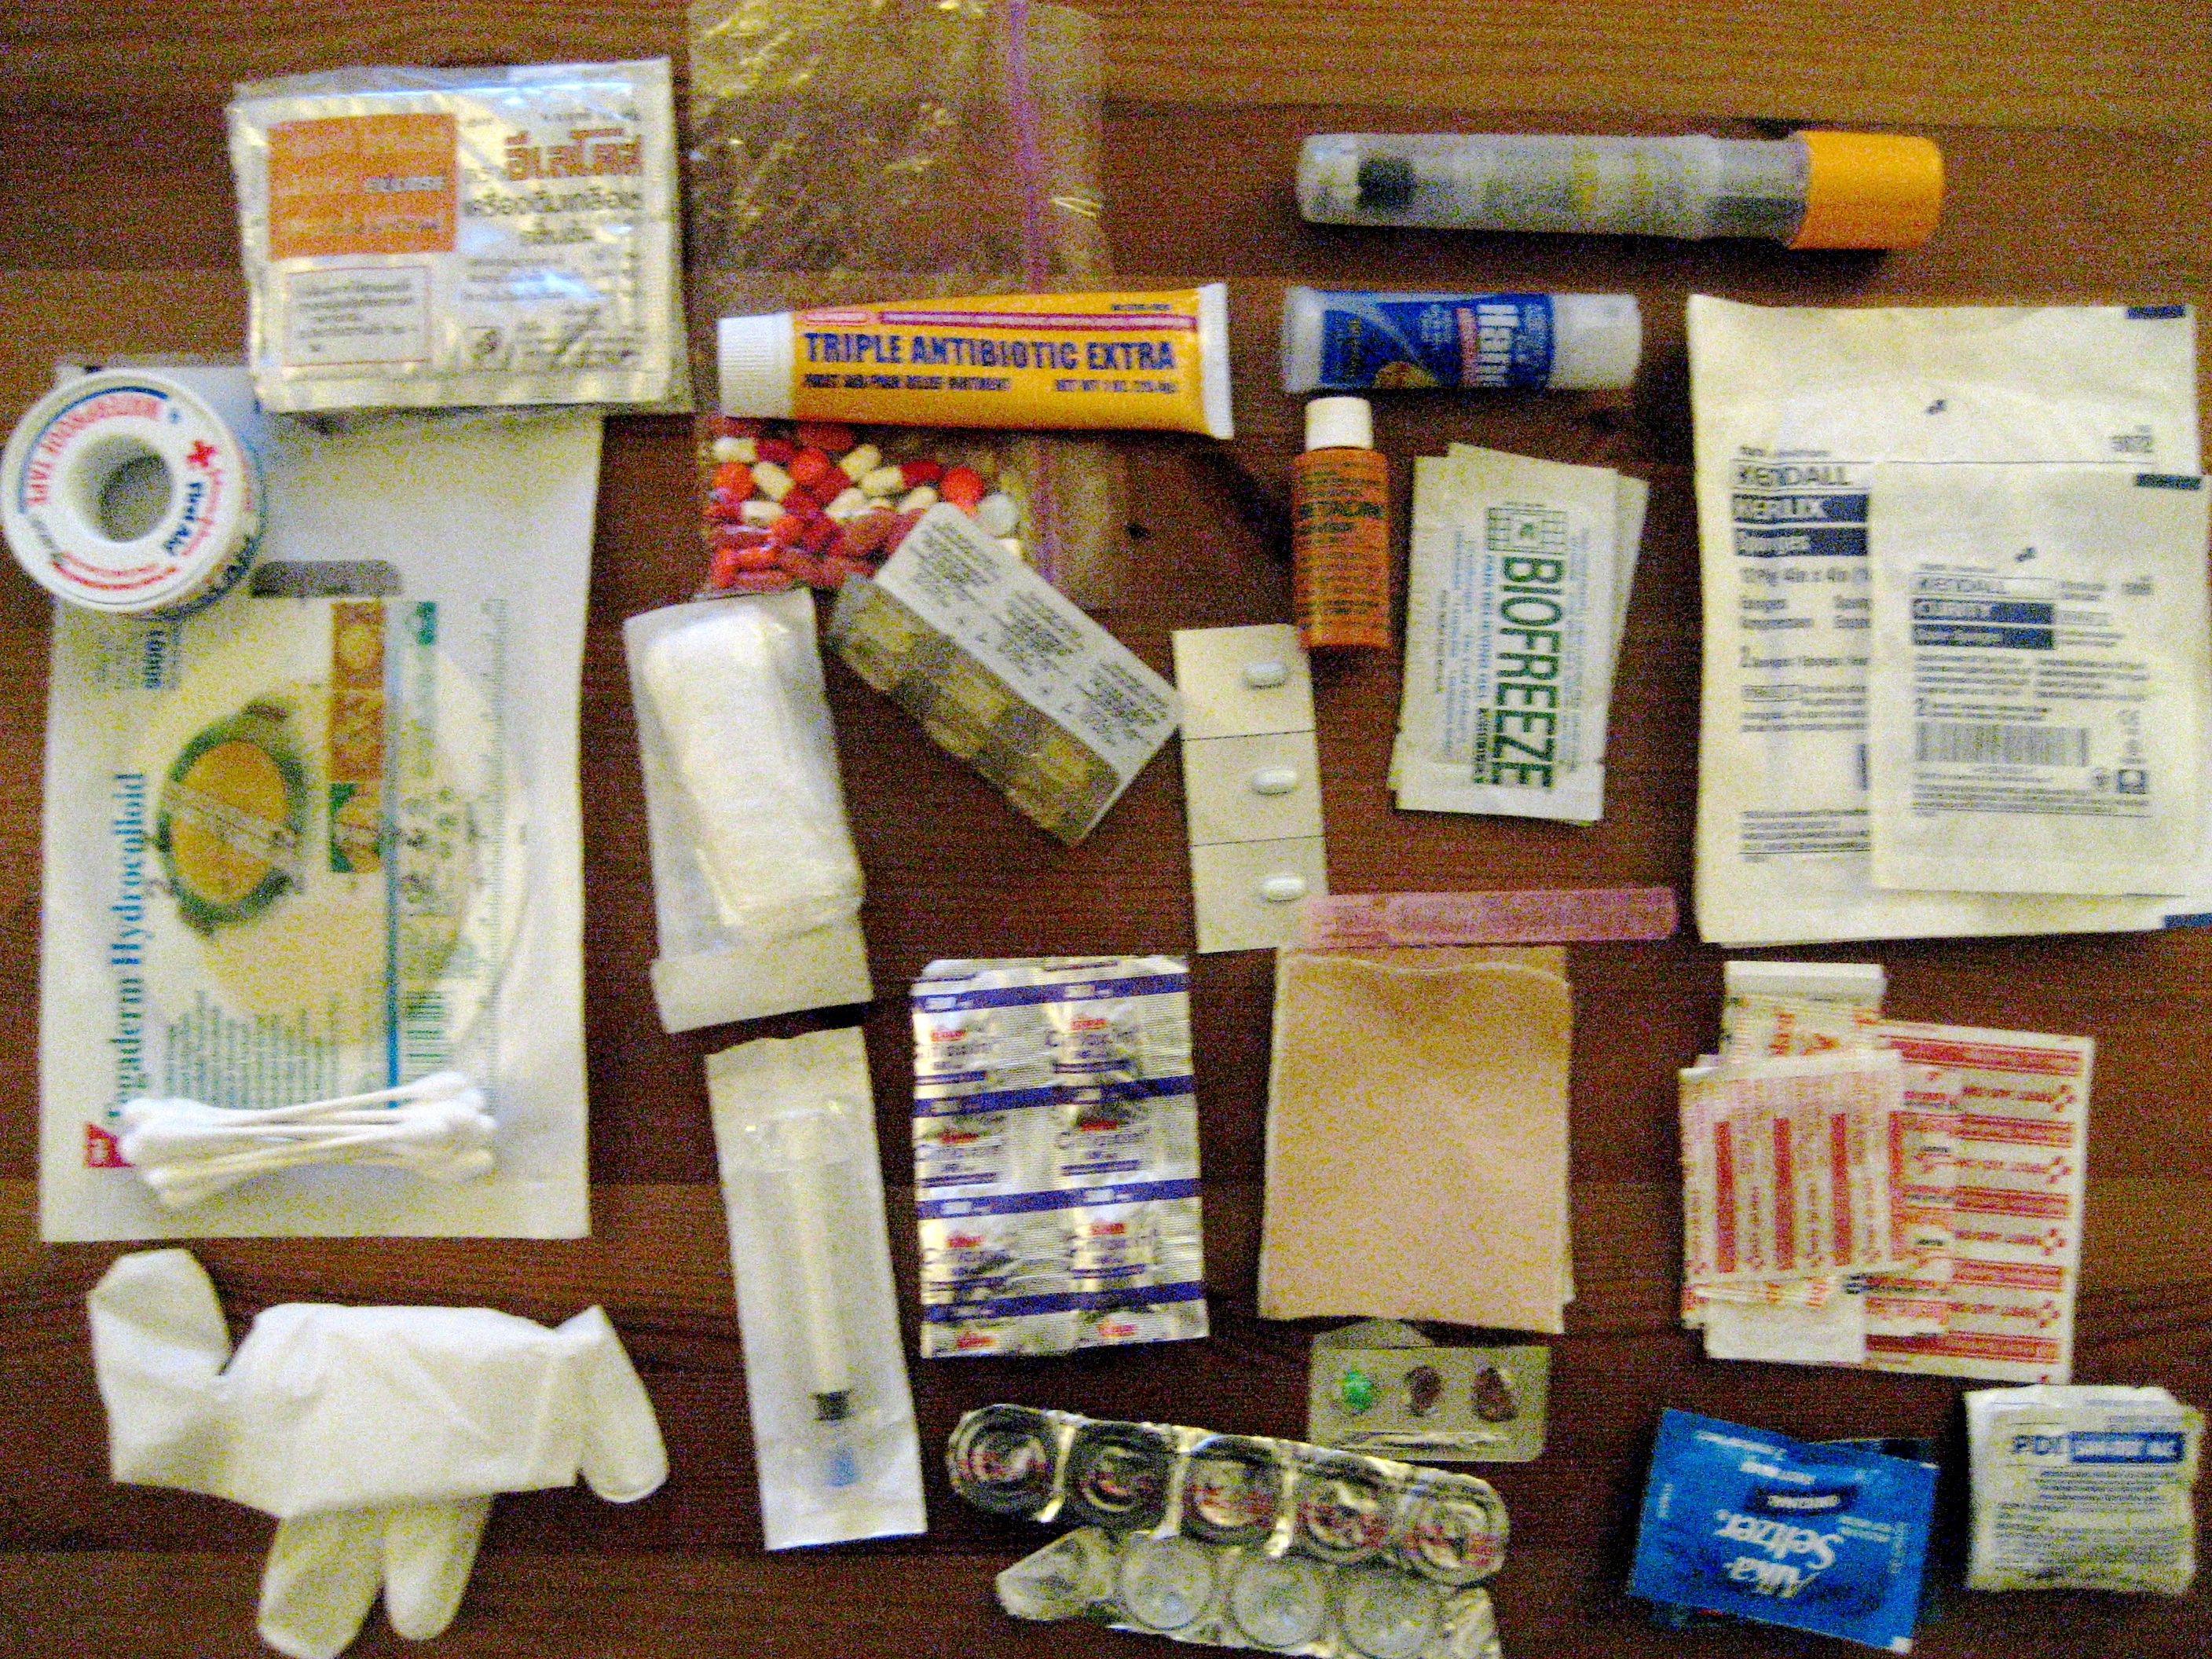 First aid kit for a trip to rural Nicaragua.